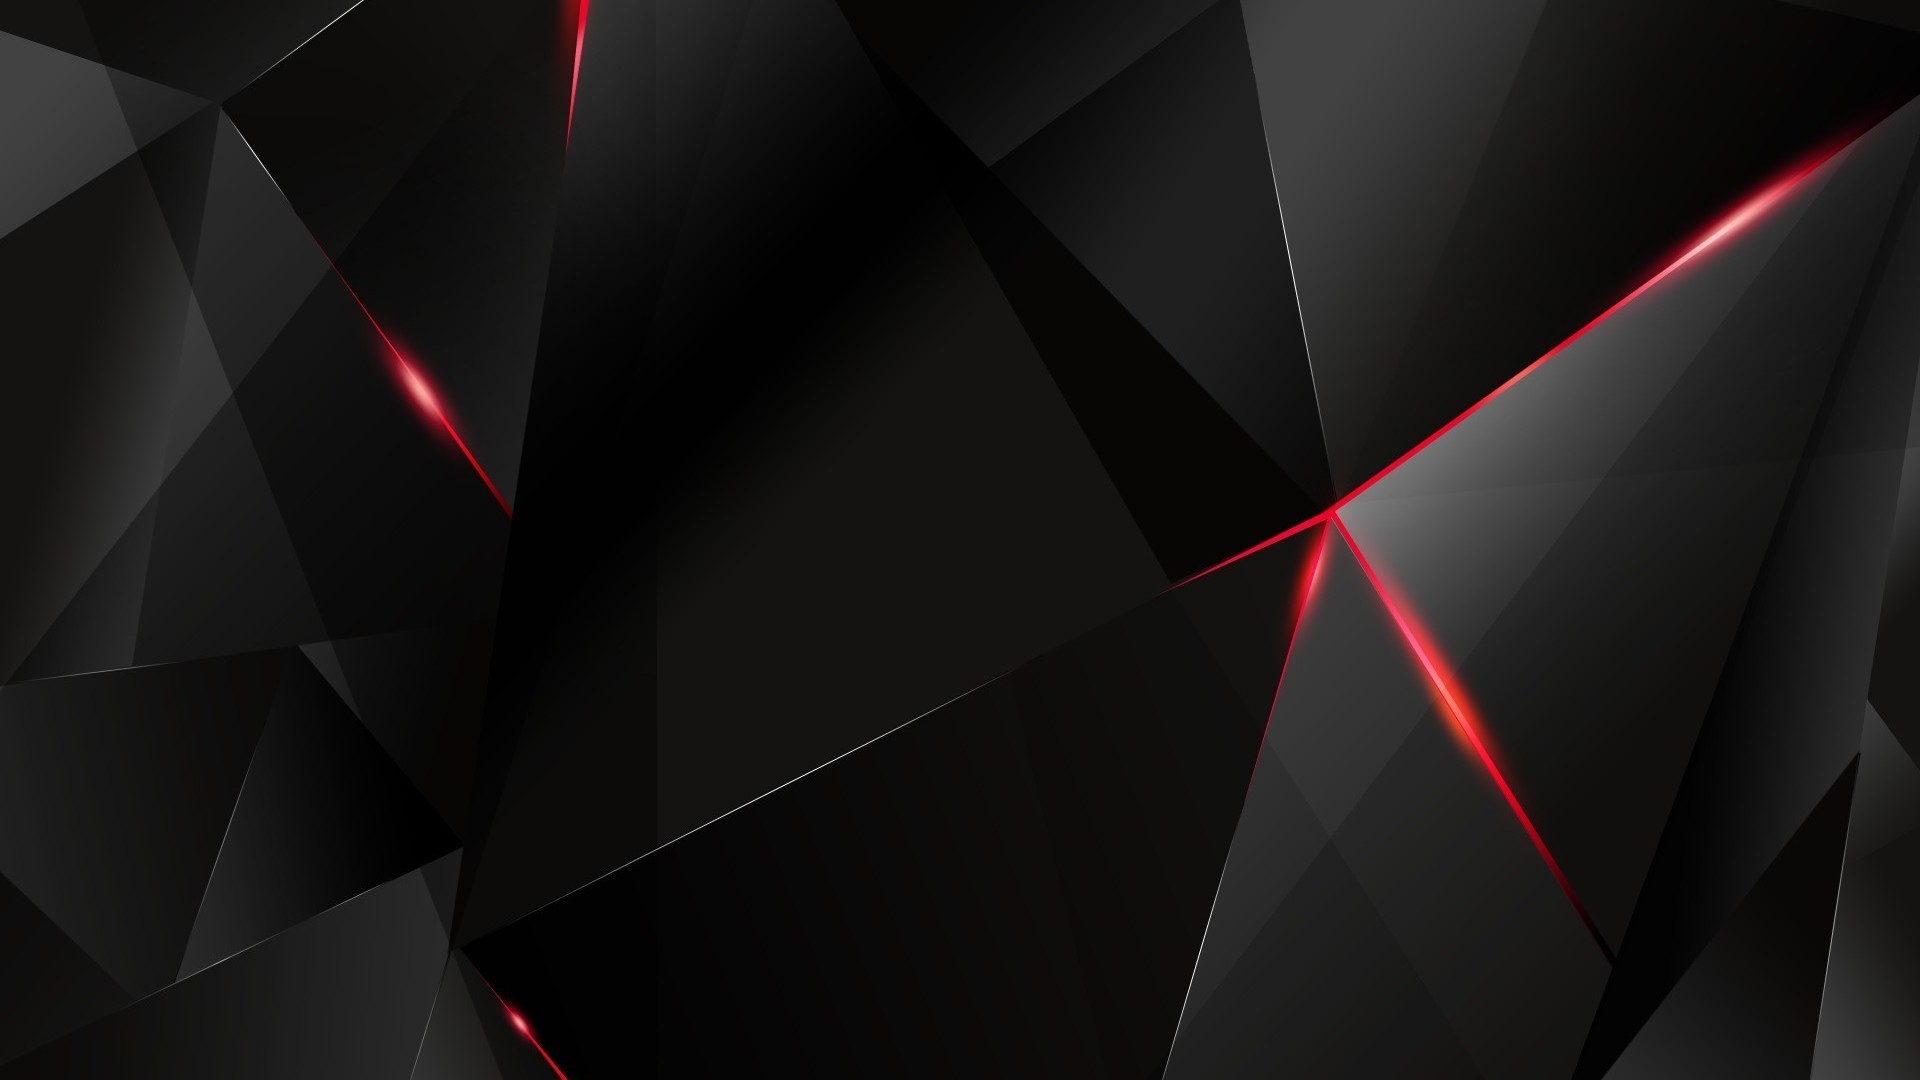 1920x1080 black-polygon-with-red-edges-abstract-hd-wallpaper-.jpg